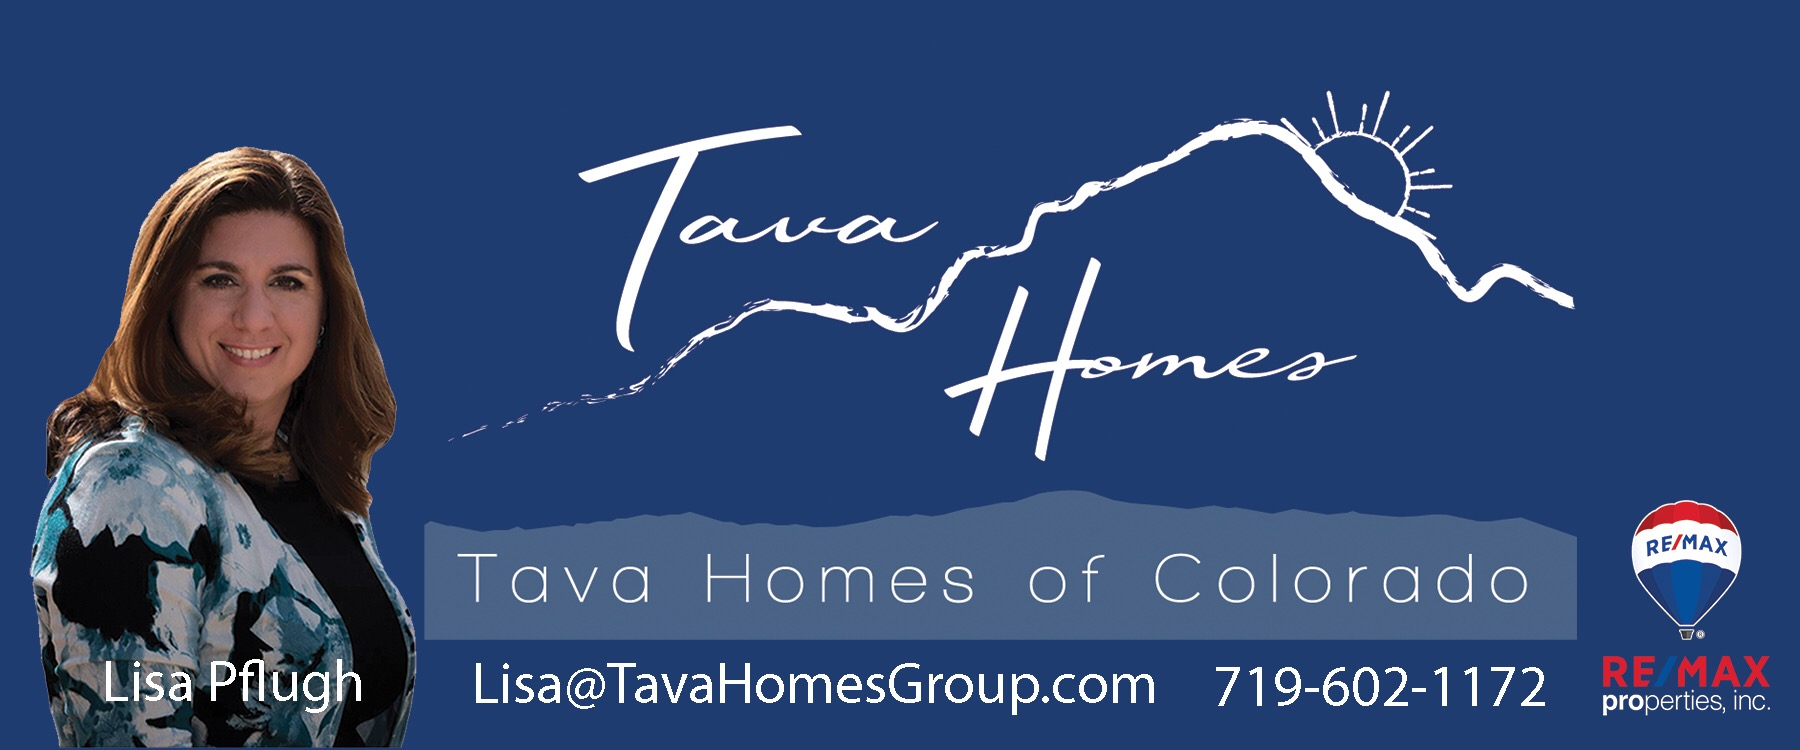 Silver - Tava Homes of Colorado - Logo